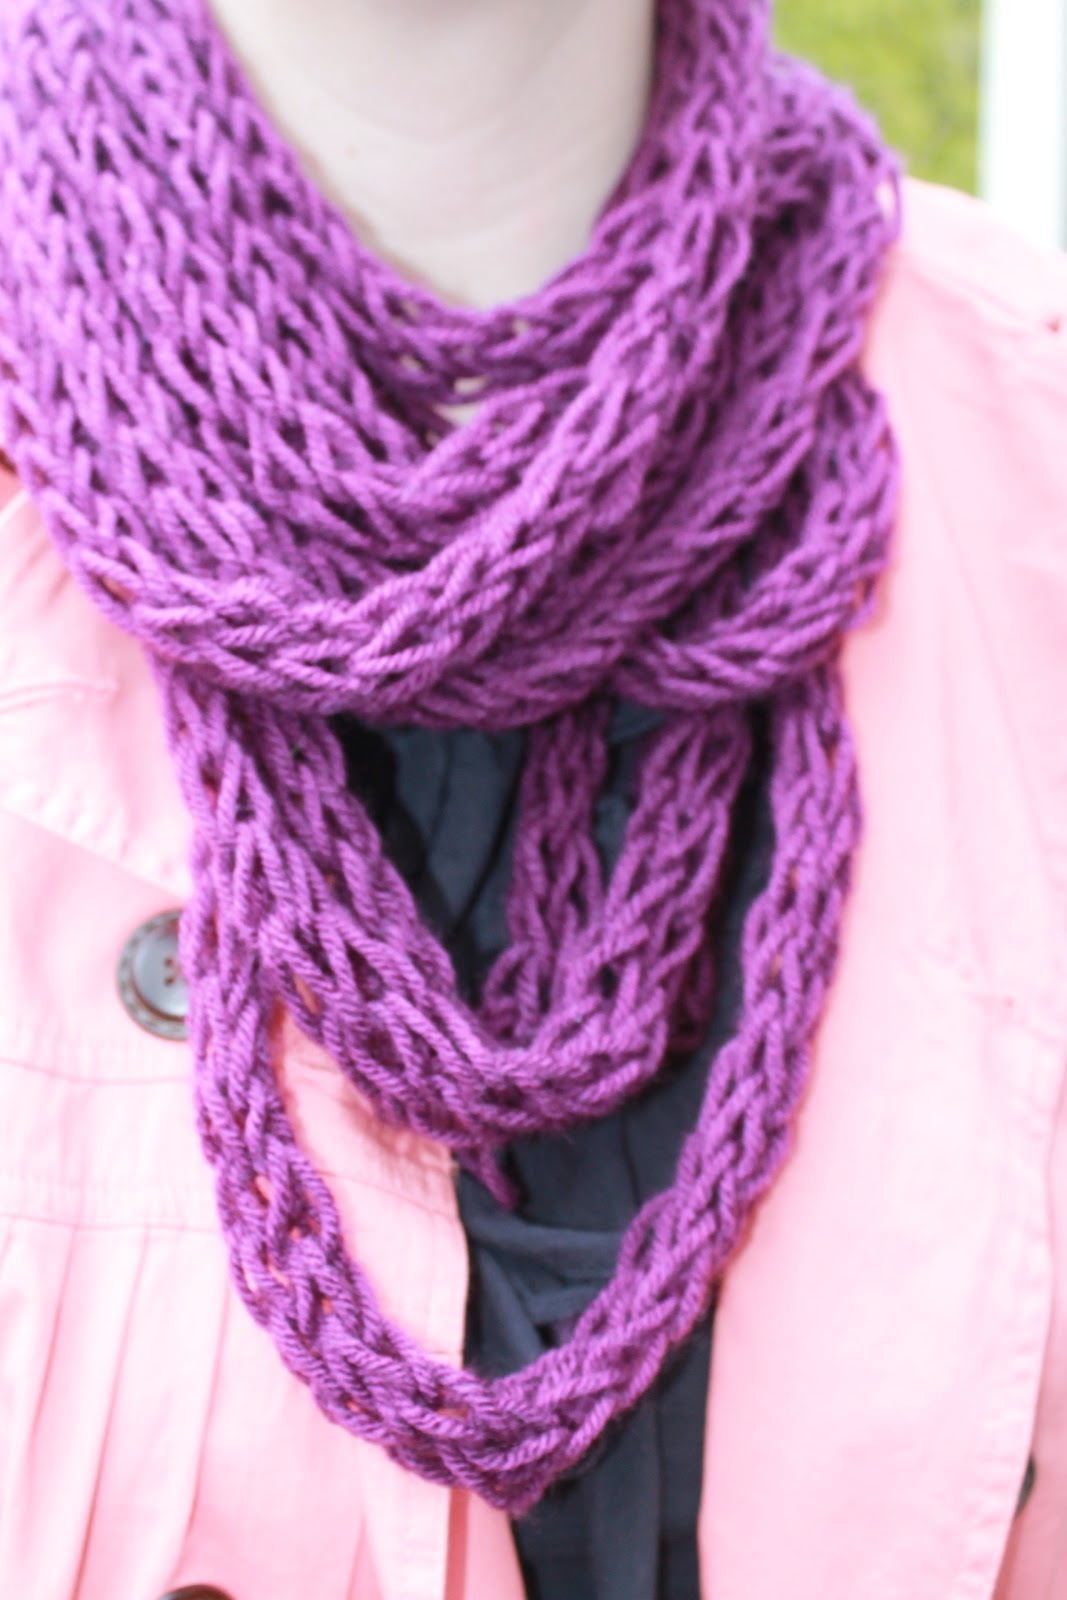 Finger Knitting Scarf : How to finger knit a scarf tutorial and patterns stitch